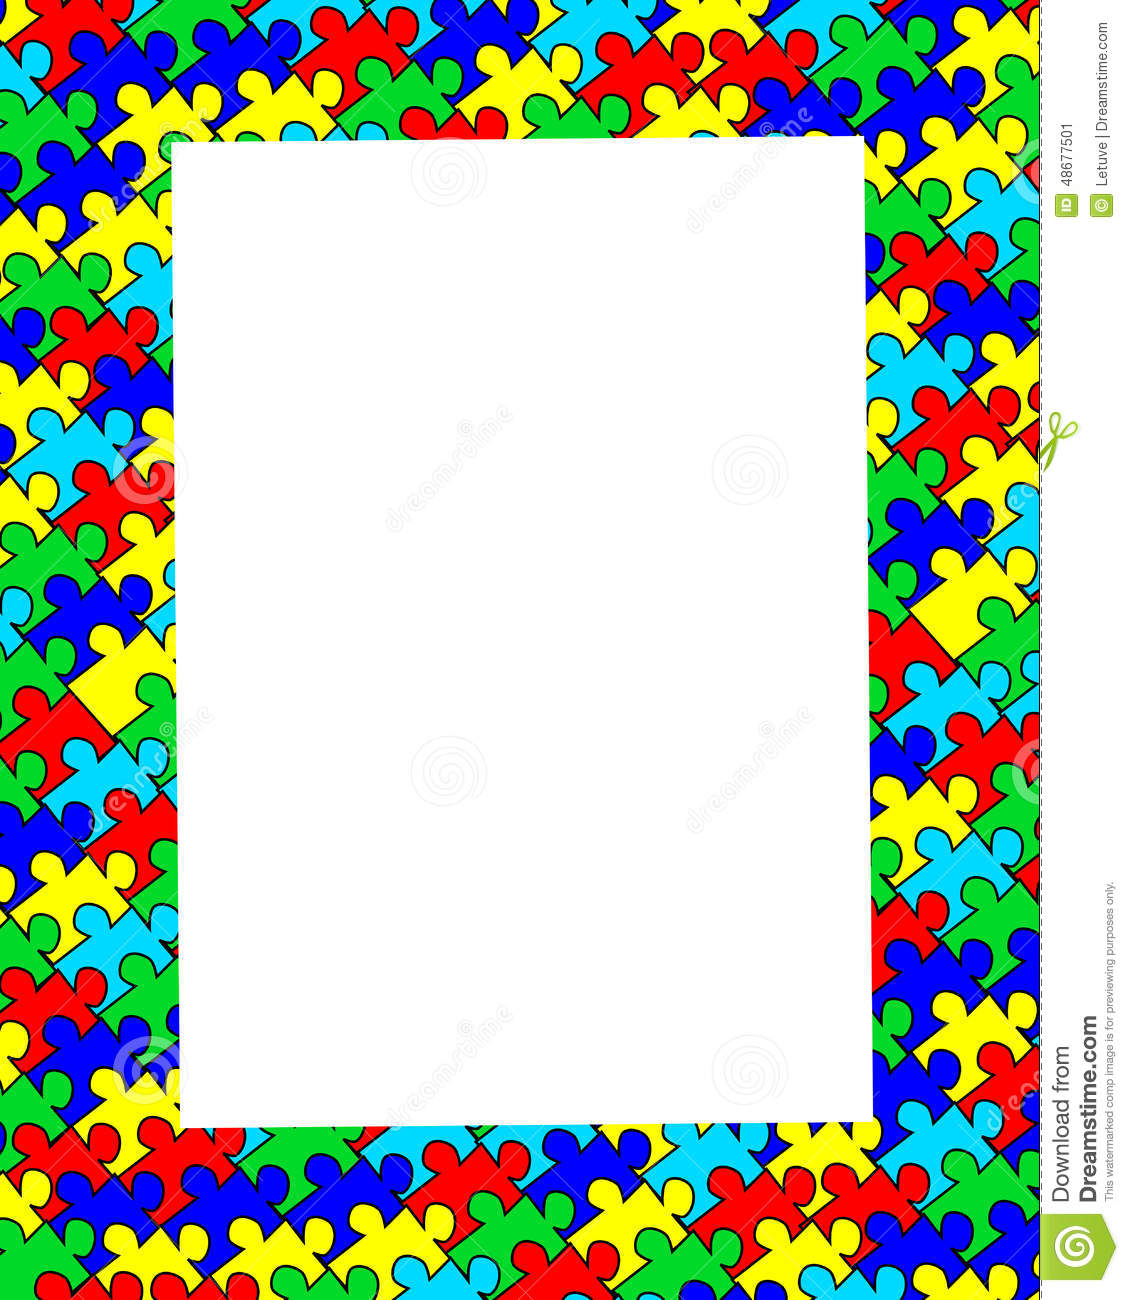 Autism clip art graphics image royalty free library Autism clip art border - ClipartFest image royalty free library